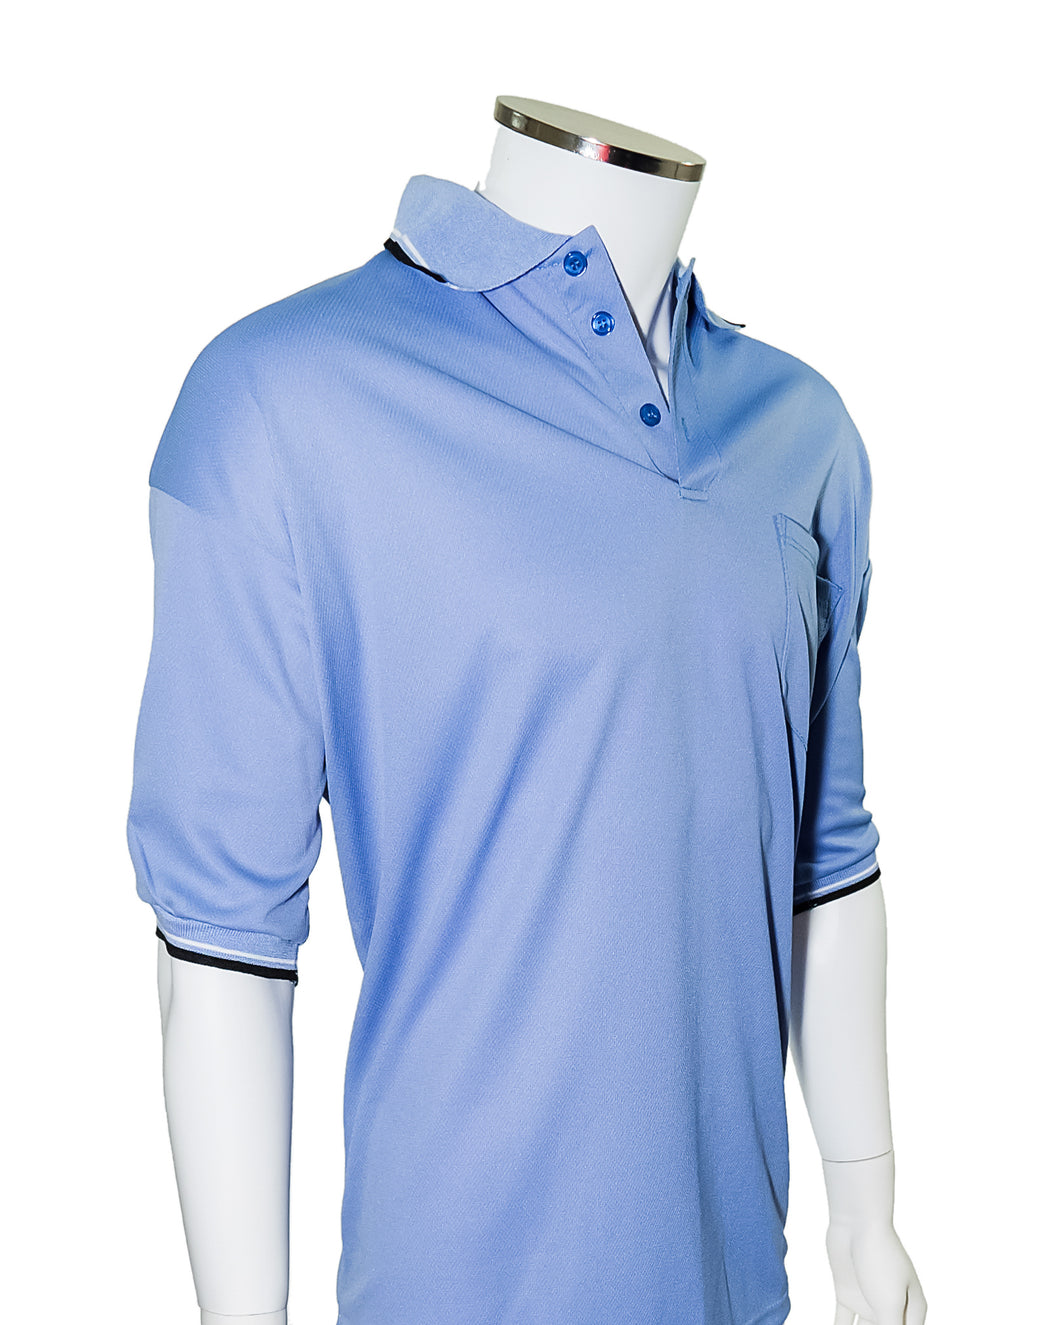 Approved Softball Umpire Shirt - Powder Blue - Officials Depot